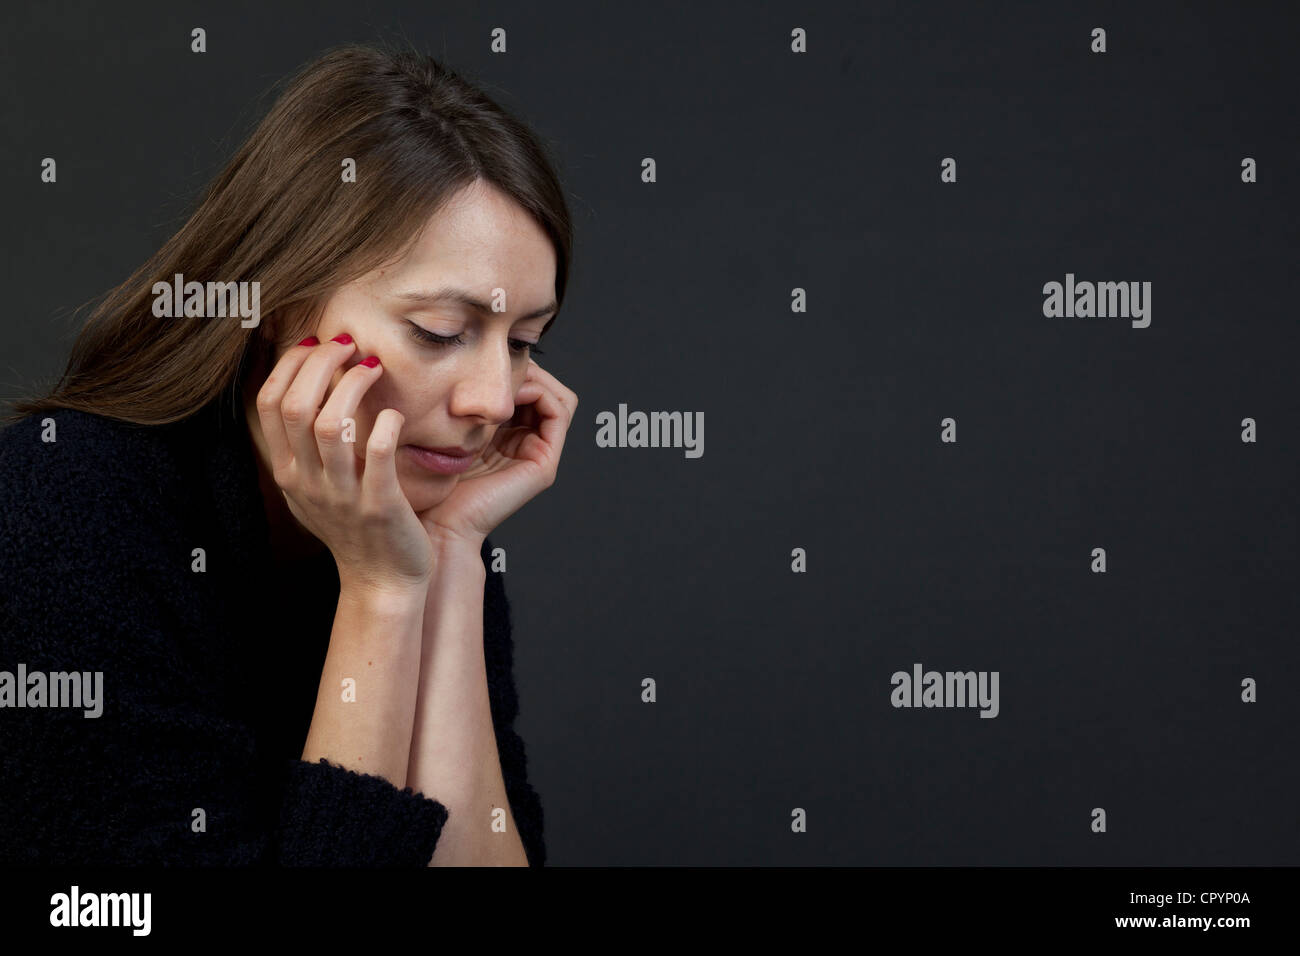 Woman, sad, depressions, worries Stock Photo